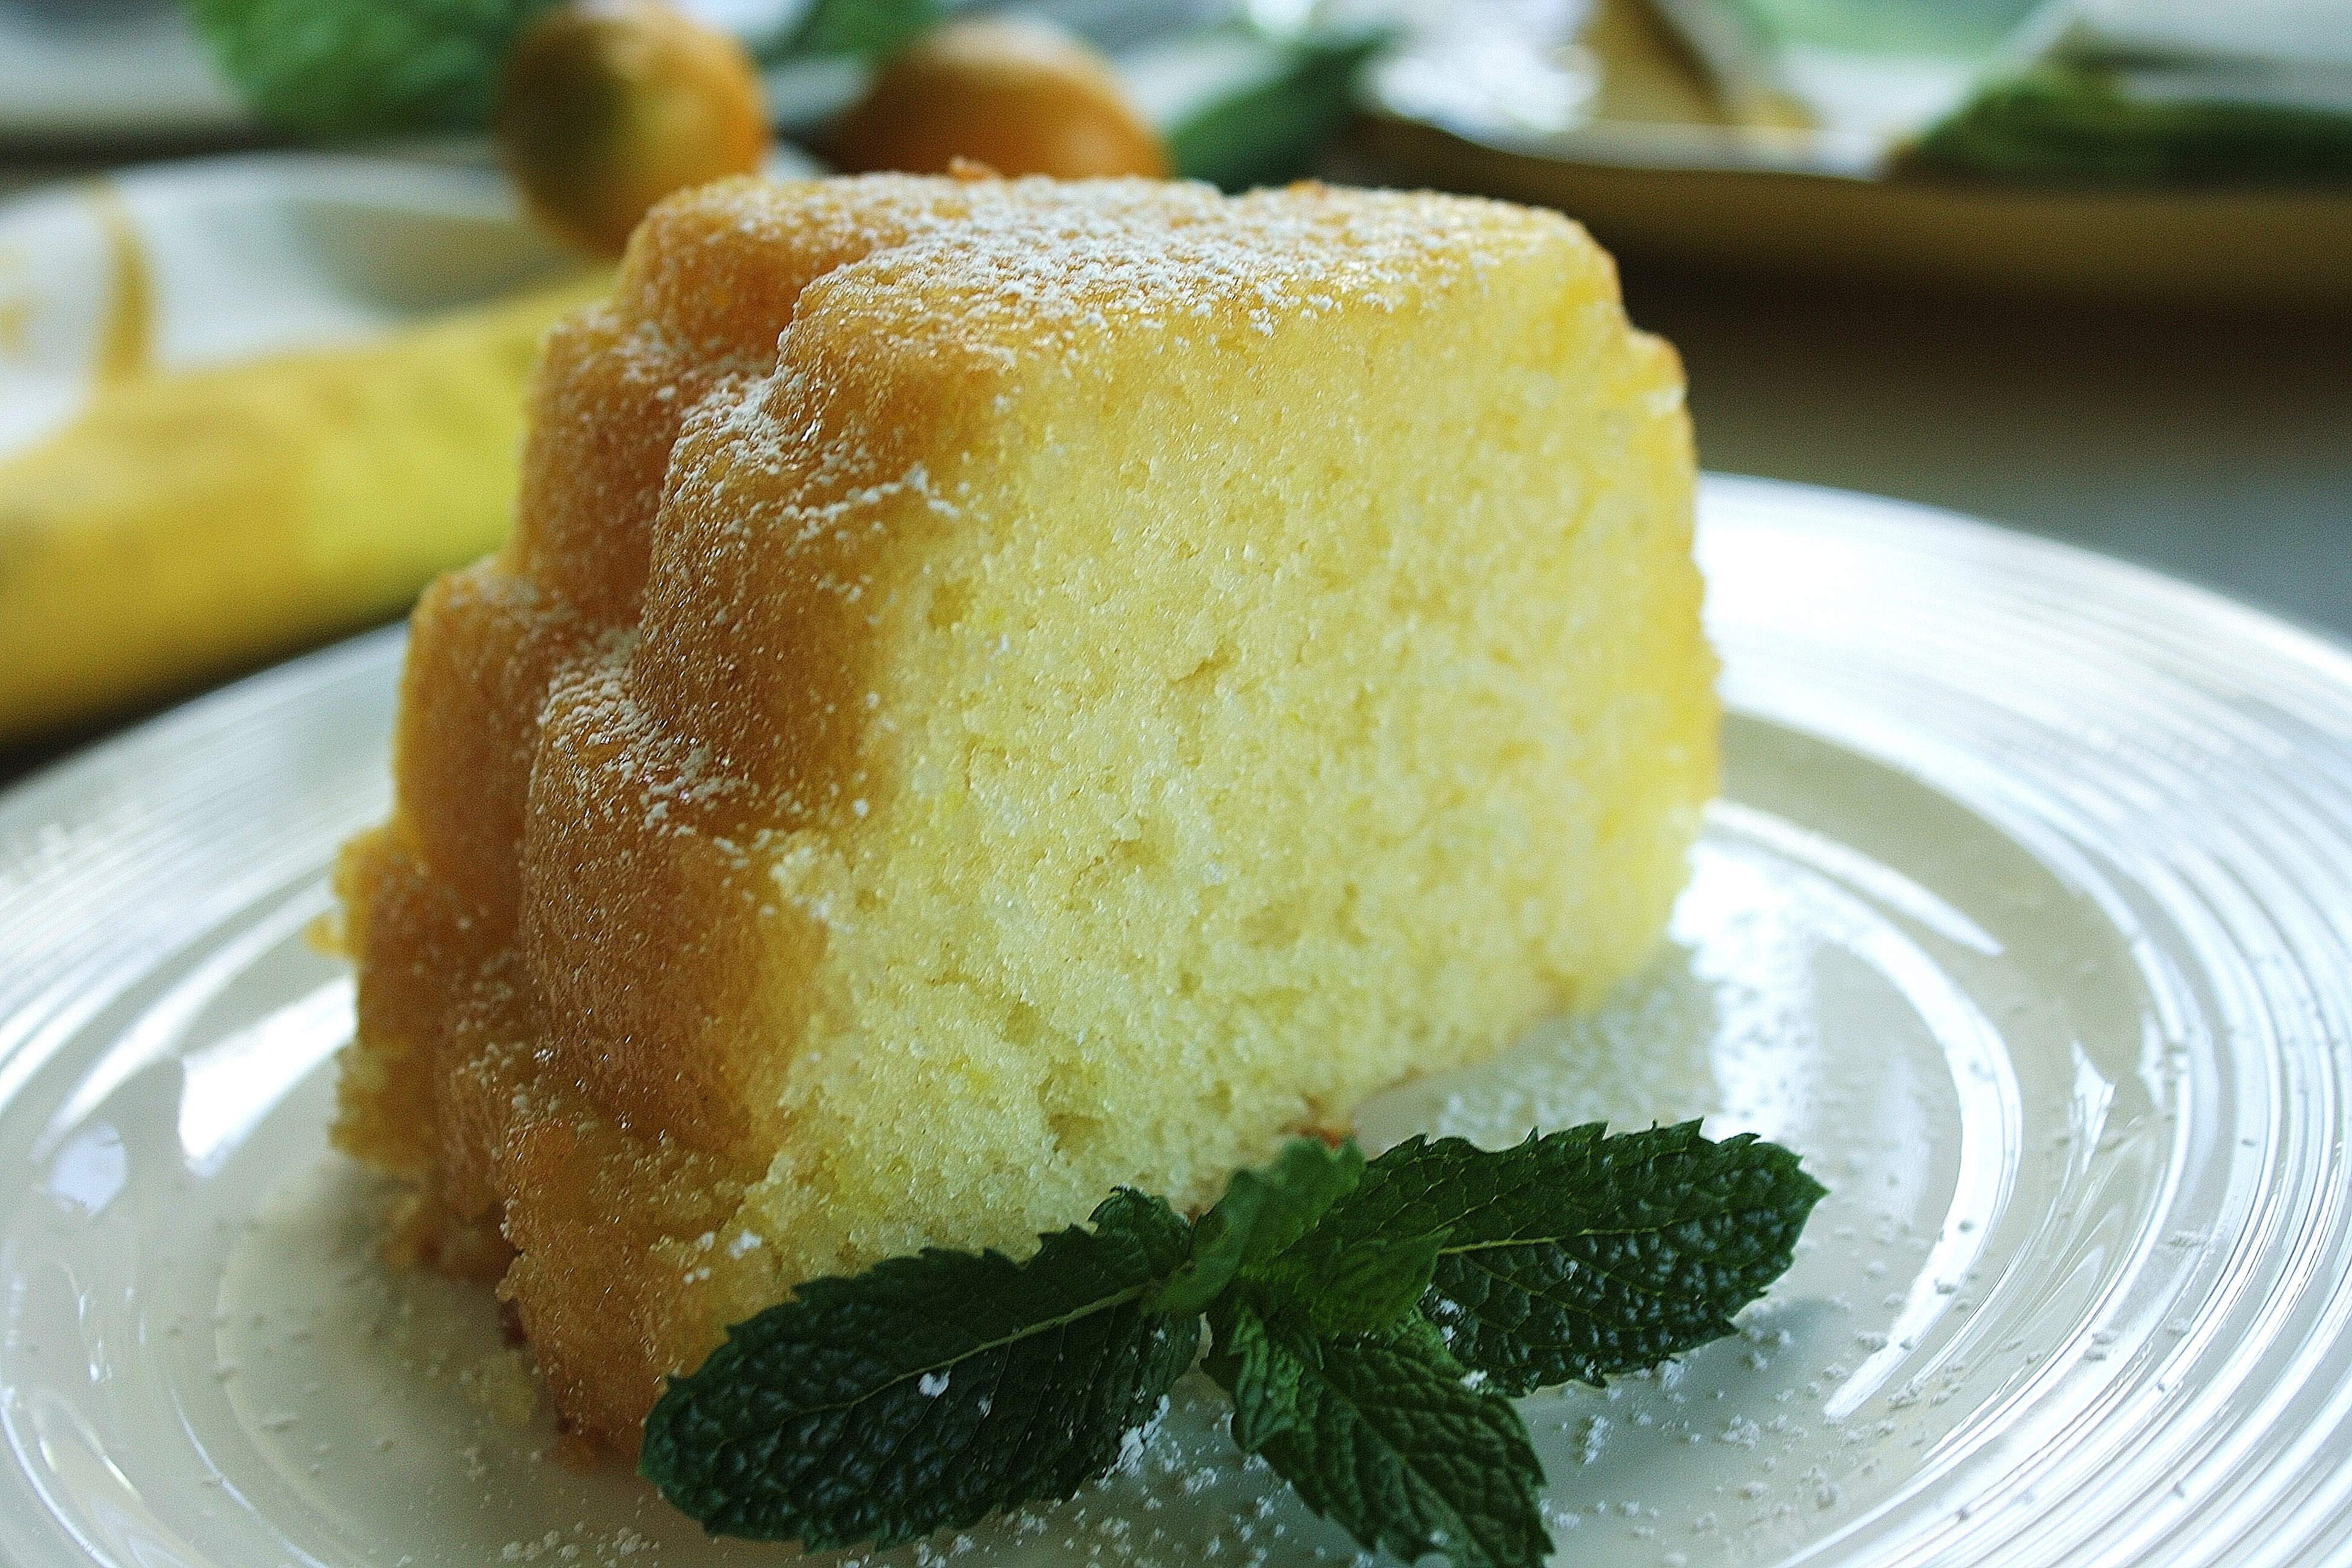 Lemon Fiesta Cake